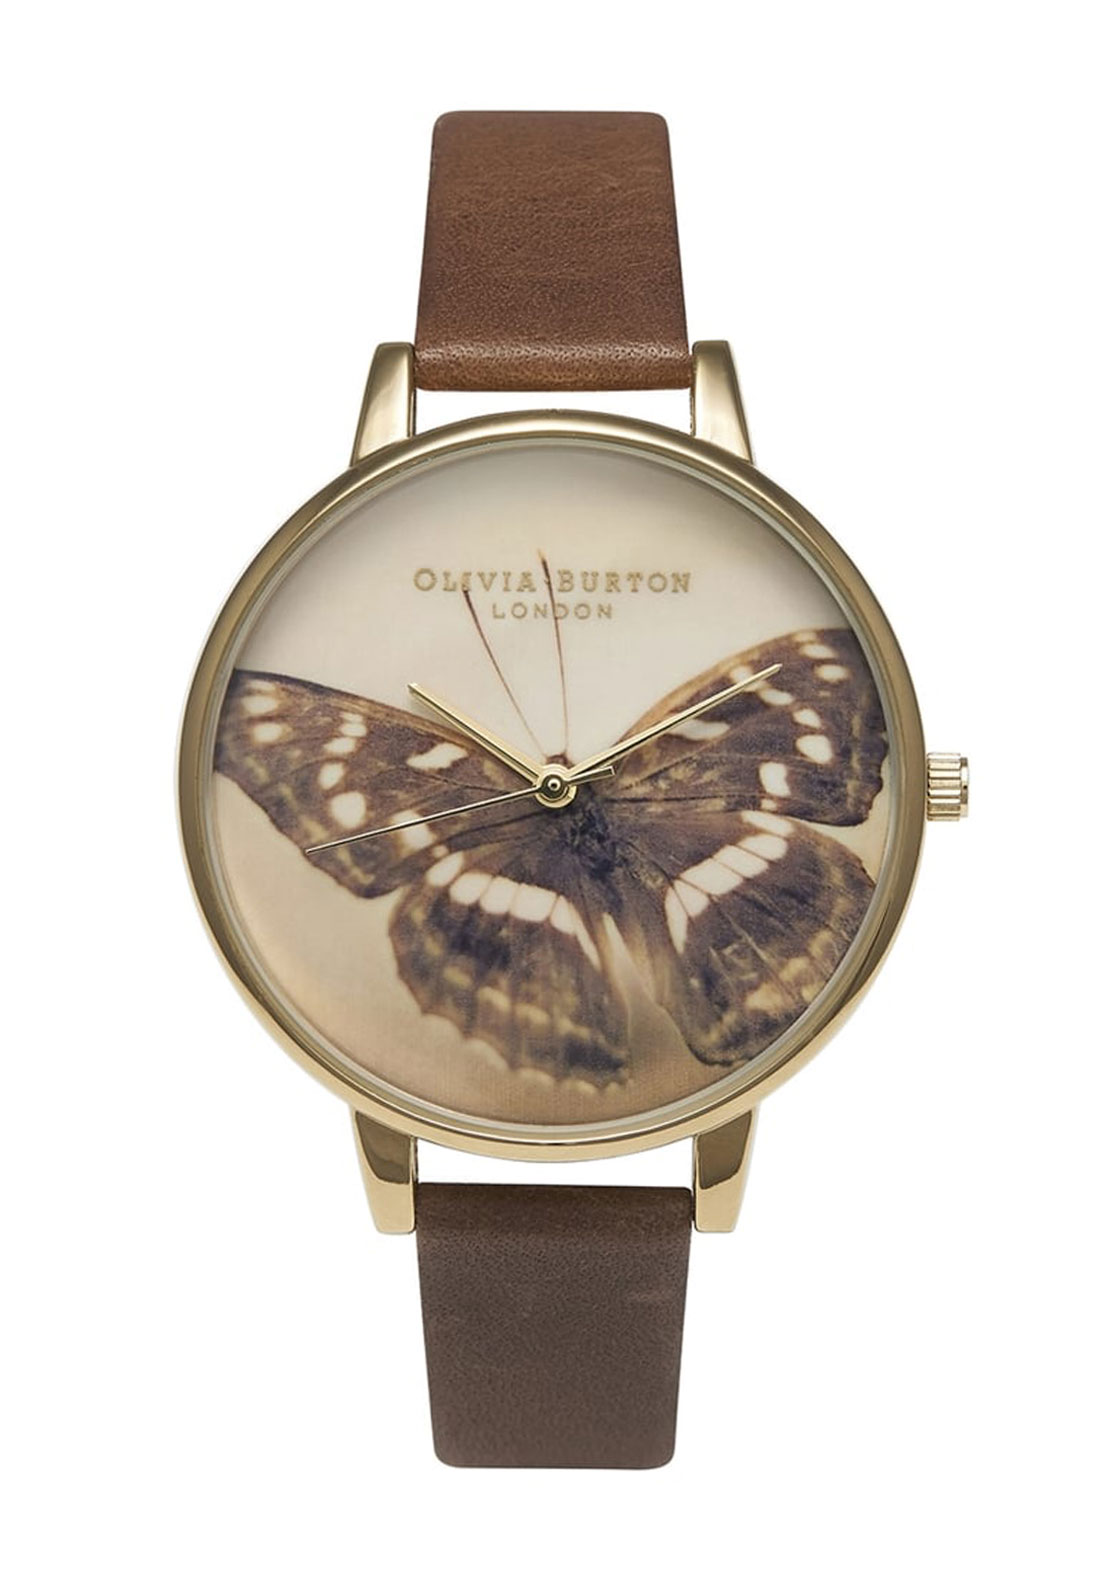 Olivia Burton London Woodland Butterfly Watch, Brown and Gold